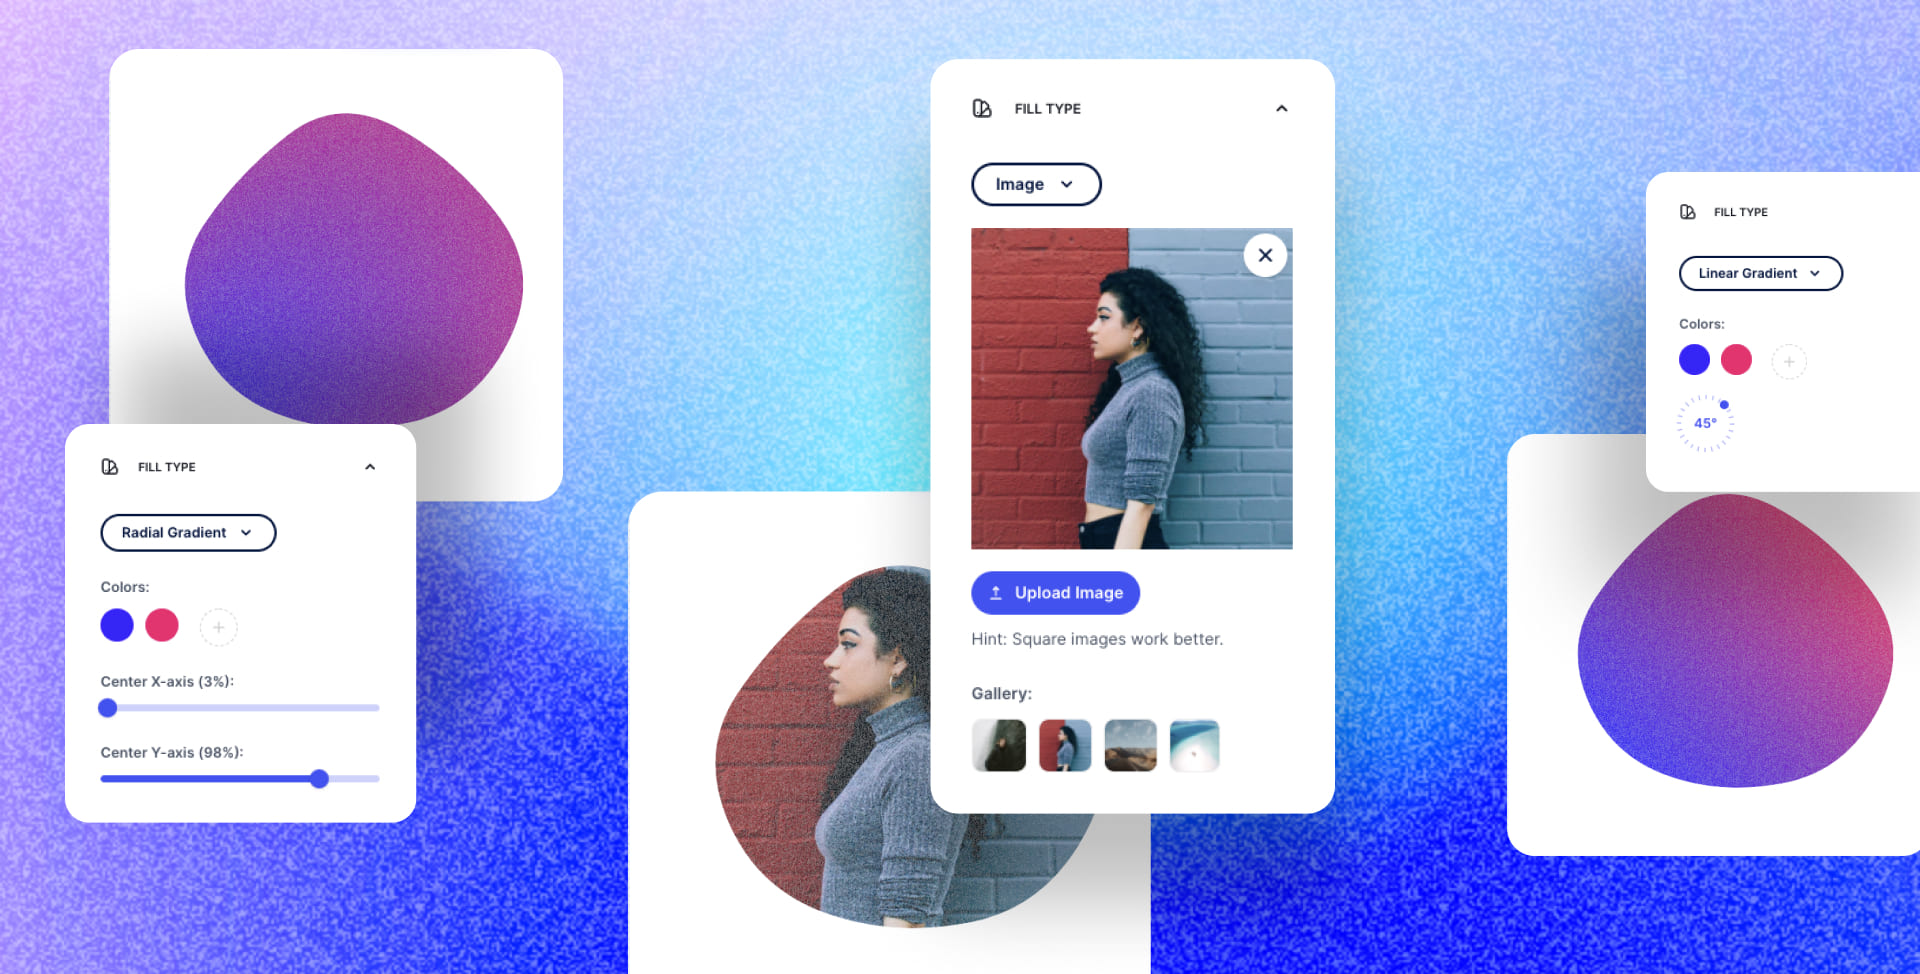 Outline, Gradients & Image fill for blobs